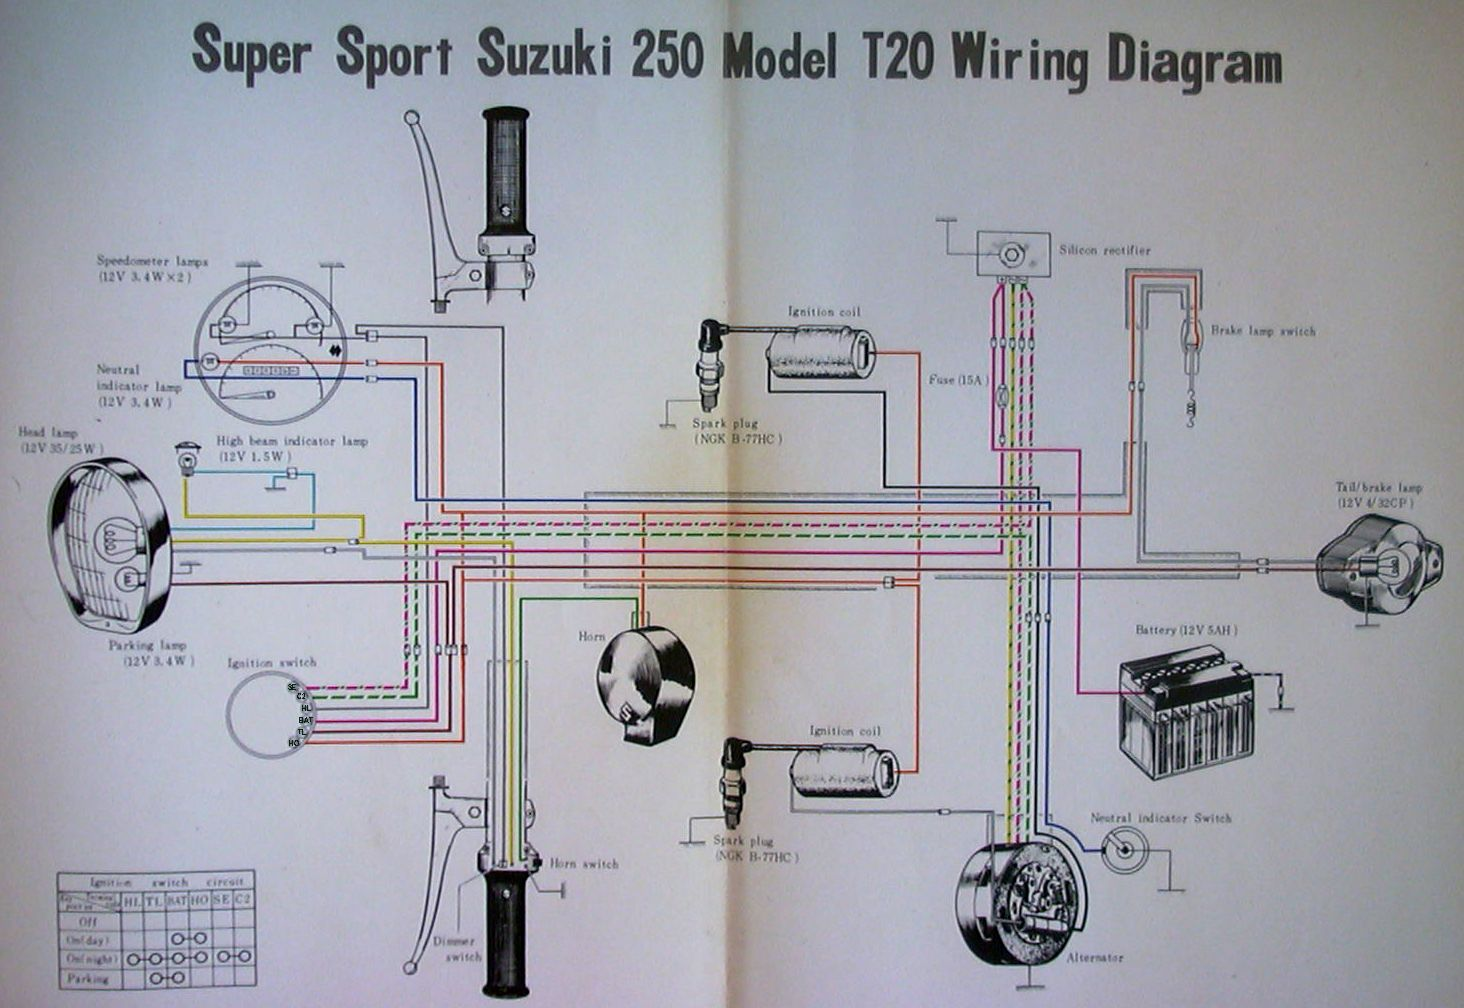 wiring the suzuki t20 'super six' x6 wiring diagram suzuki wire diagram at edmiracle.co